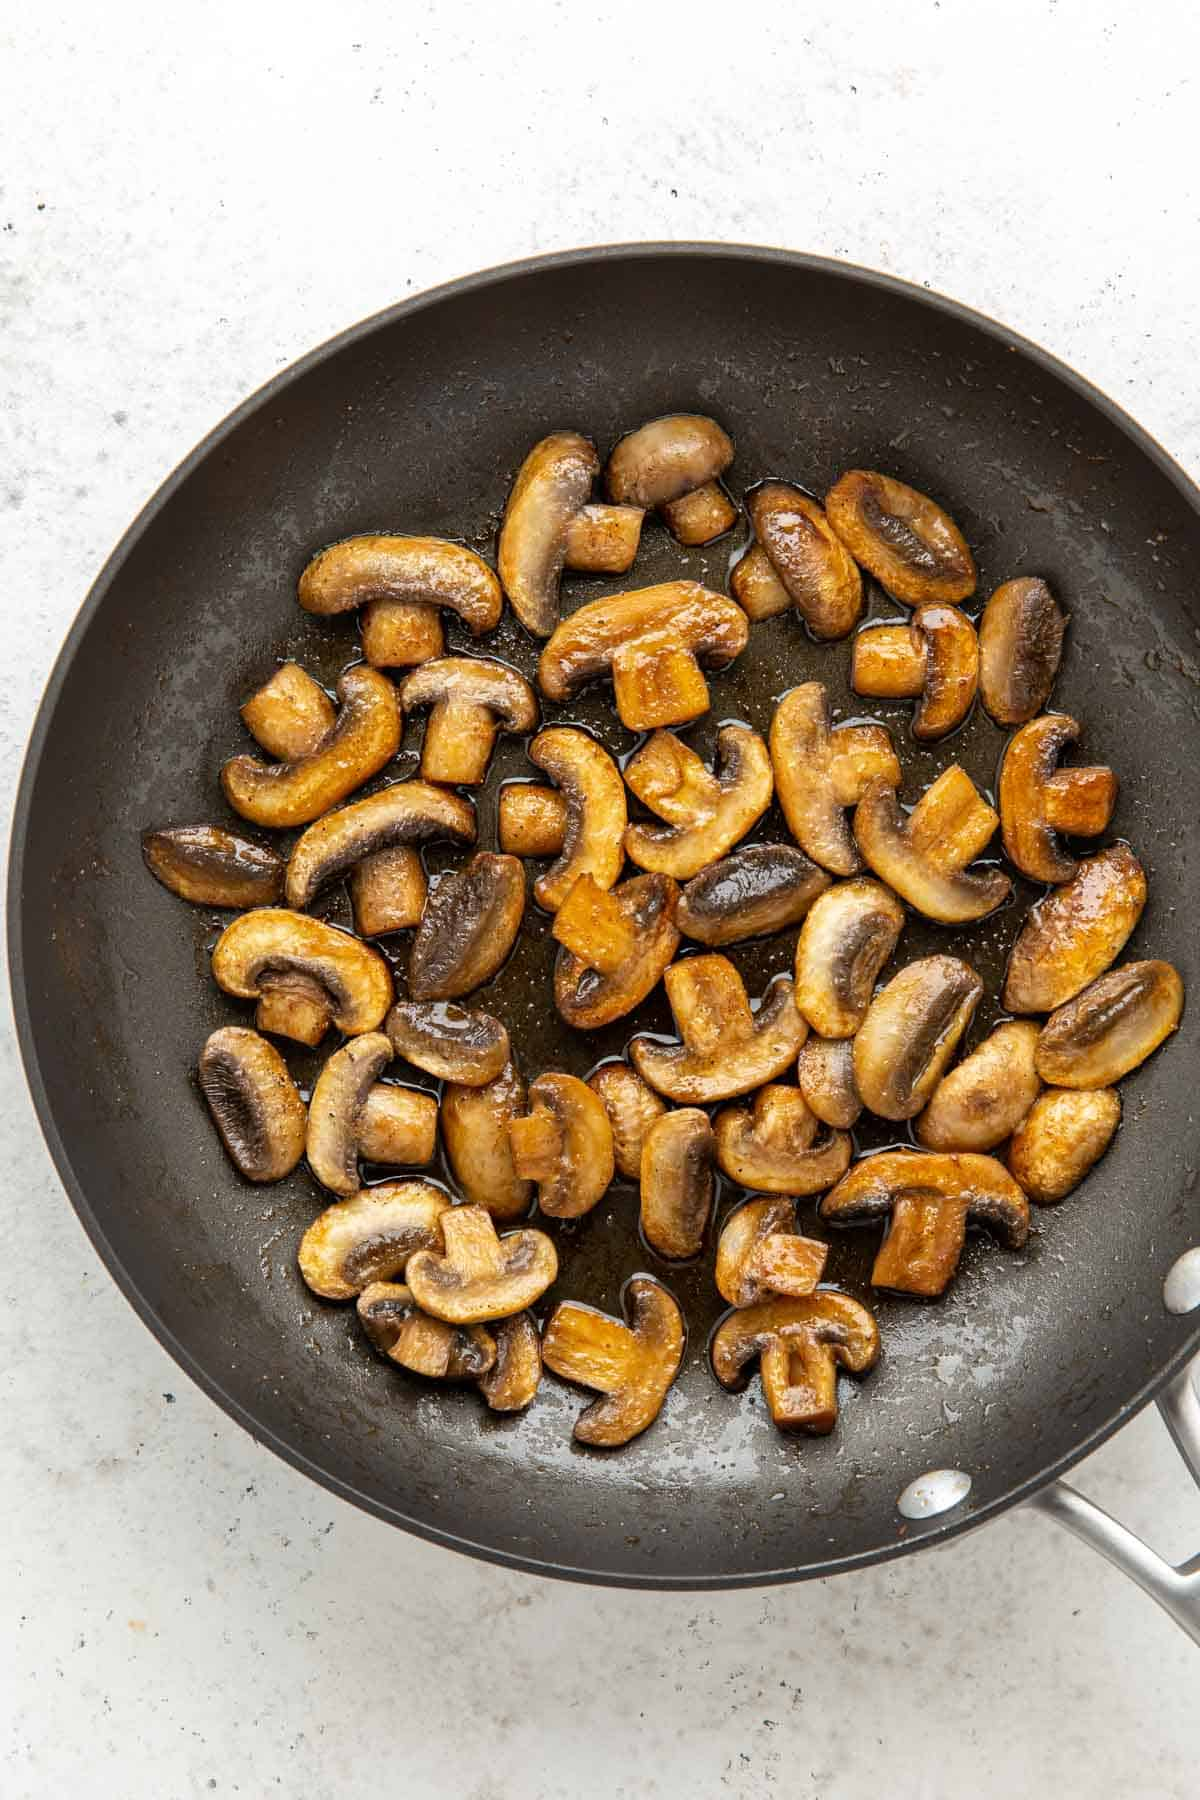 Overhead view of sauteed sliced mushrooms in a skillet.